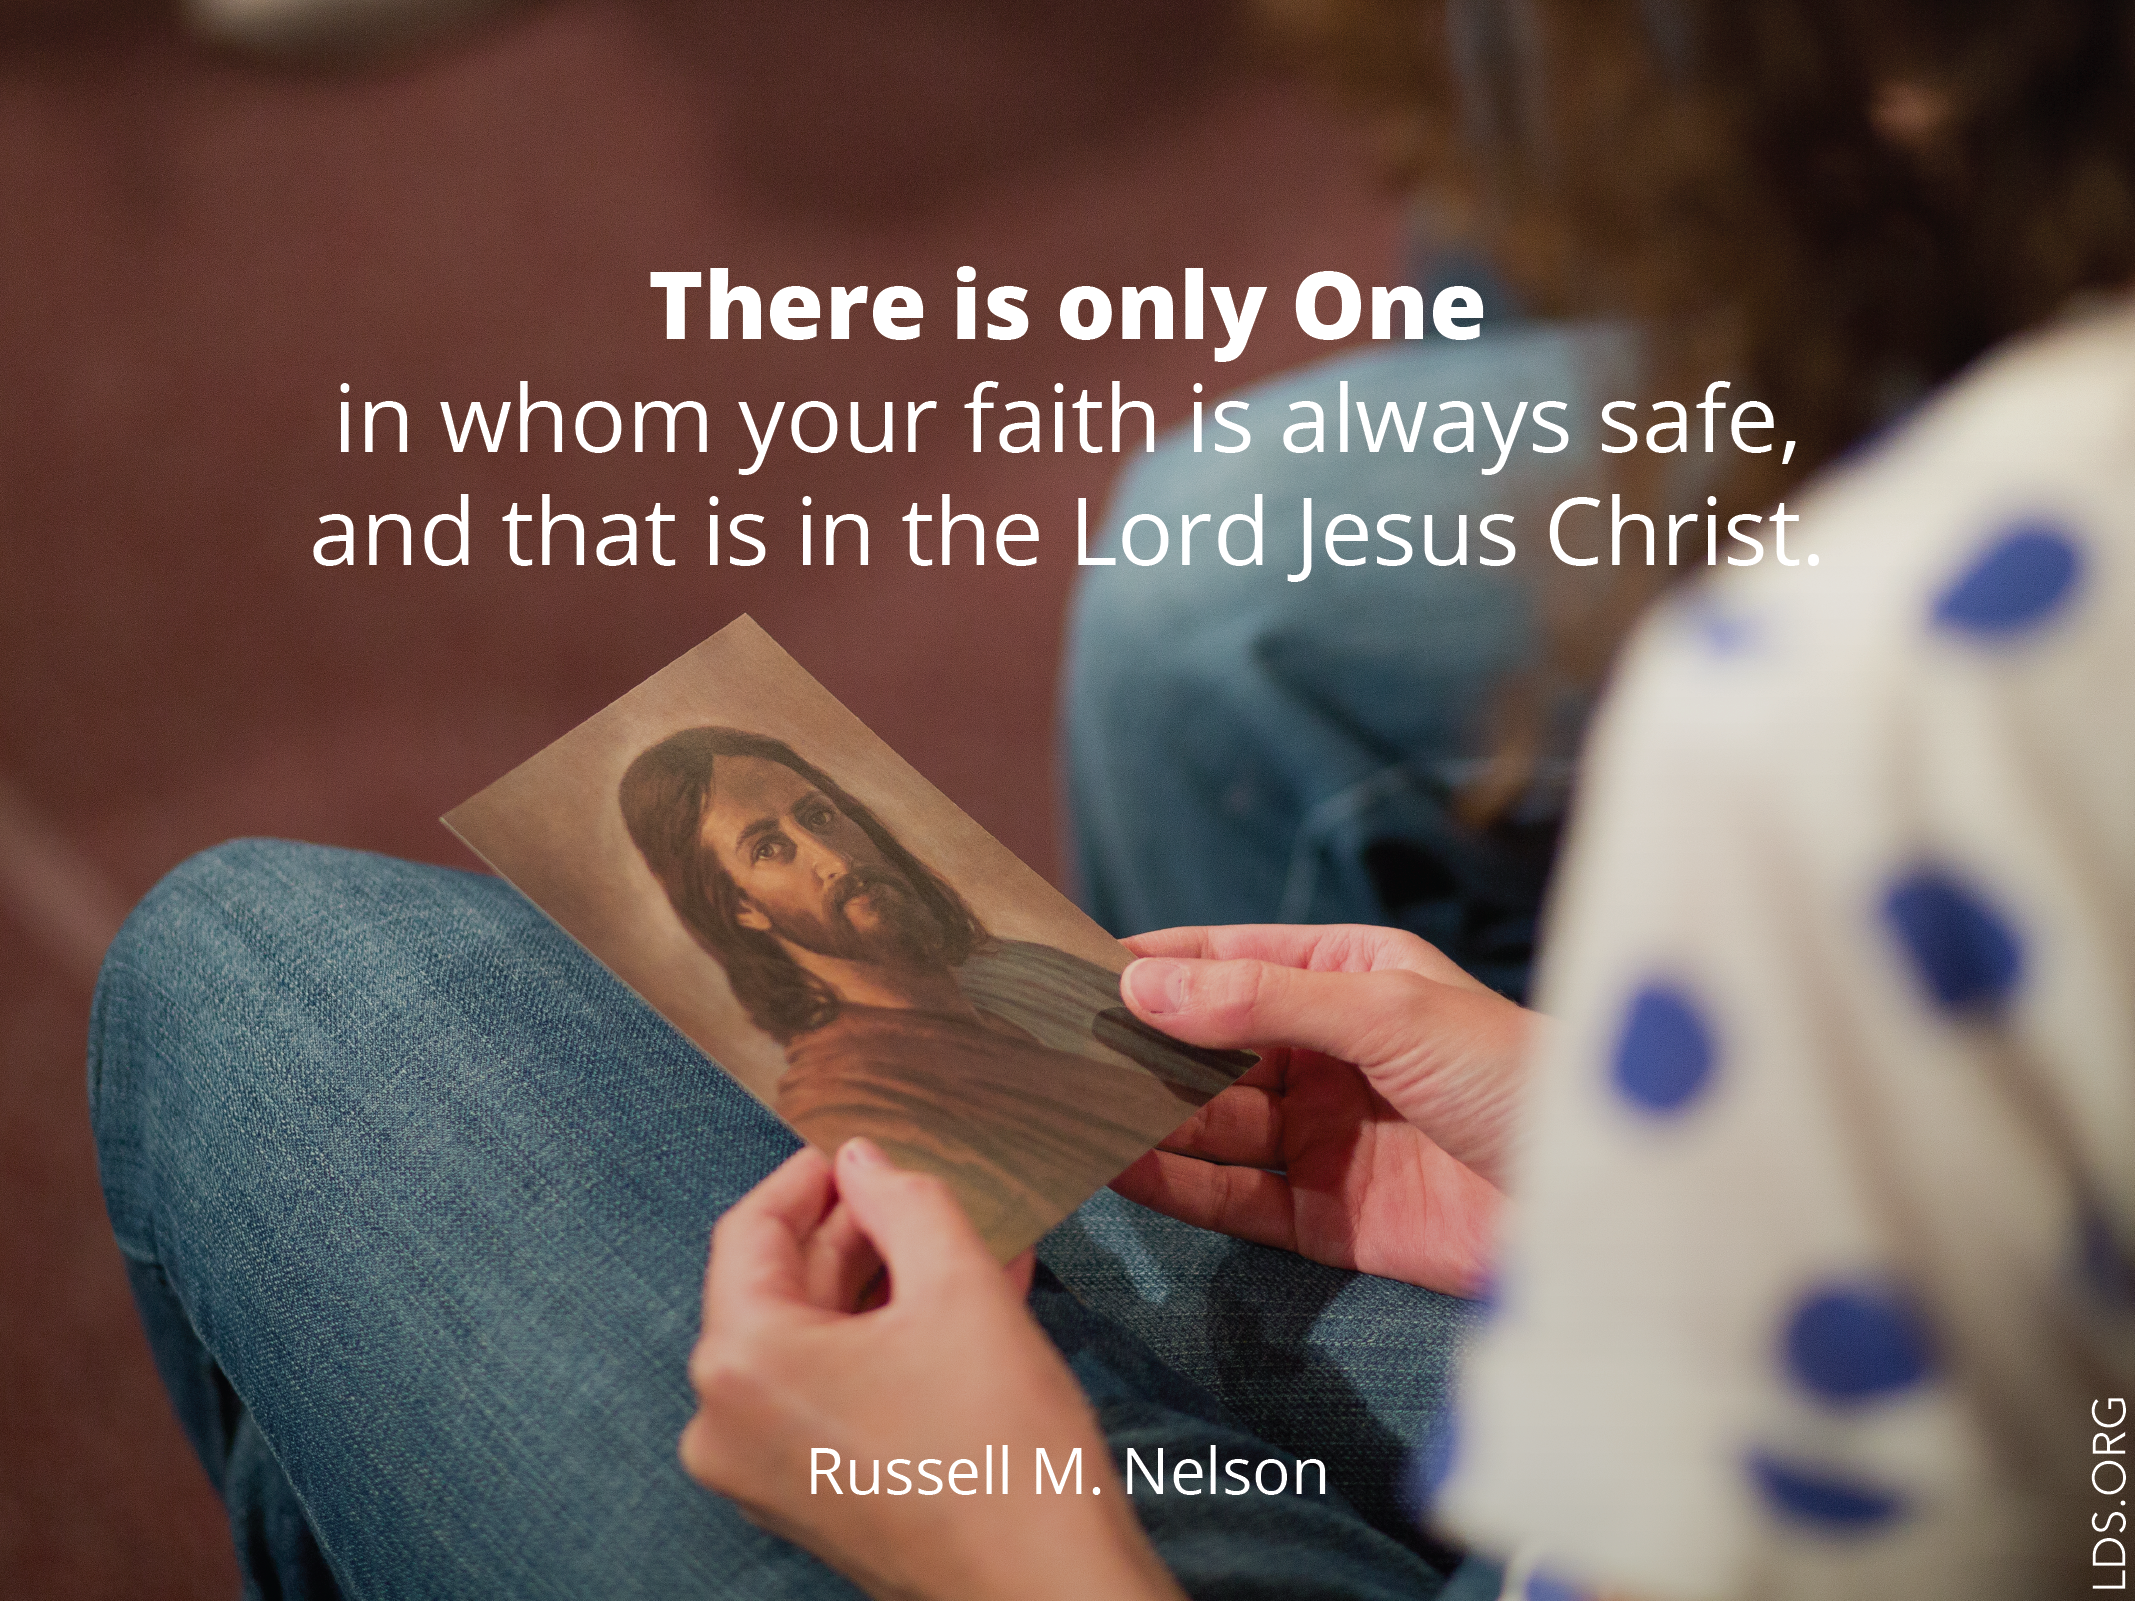 """Meme with a quote by Russell M. Nelson reading """"There is only one in whom your faith is always safe, and that is the Lord Jesus Christ.""""  English language.  © See Individual Images ipCode 1."""